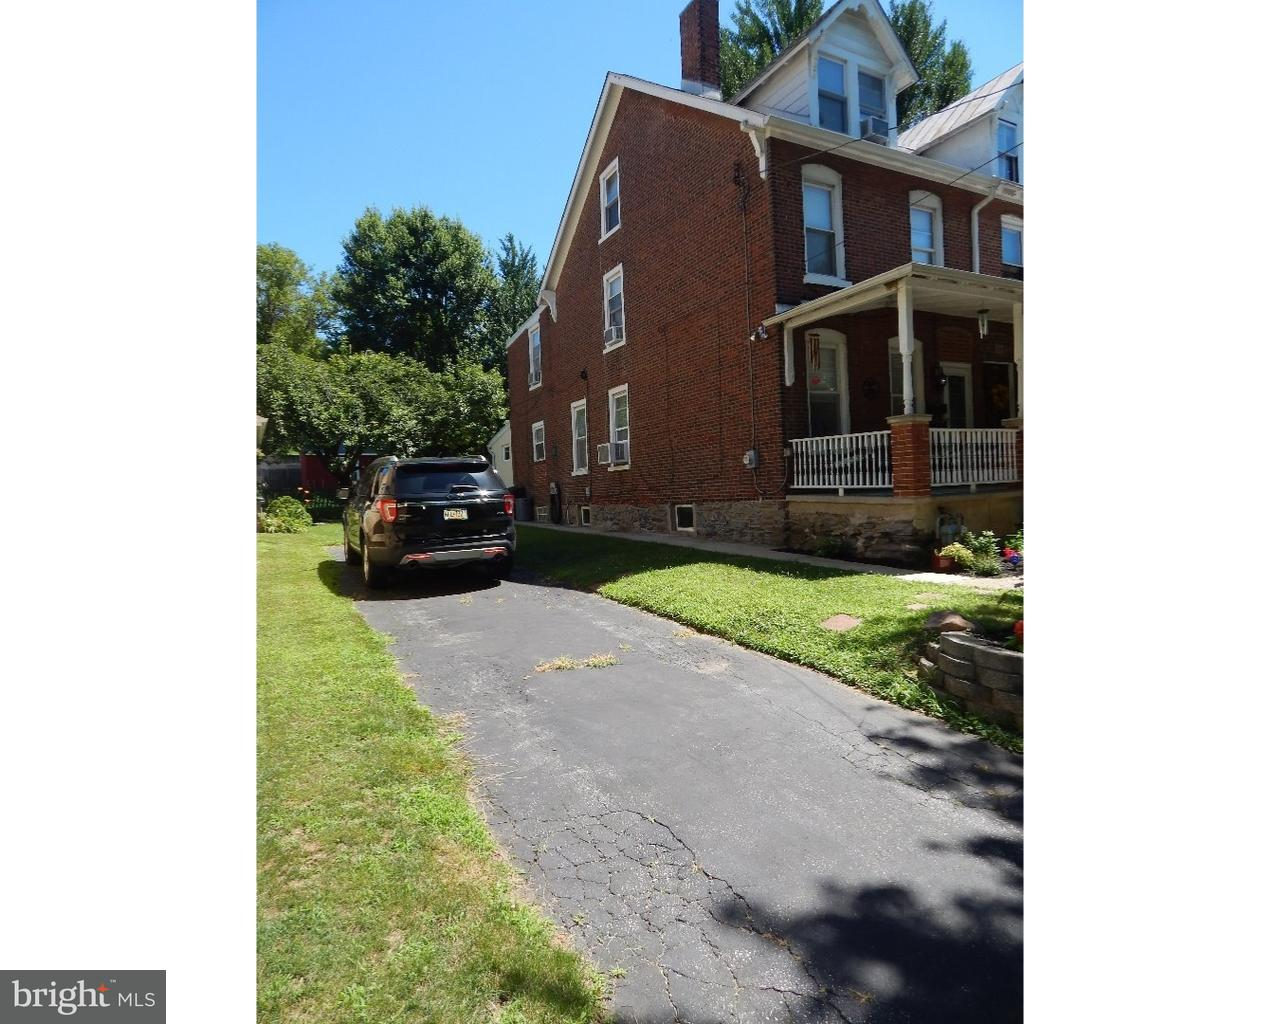 210 E 10TH AVE, CONSHOHOCKEN - Listed at $354,900,